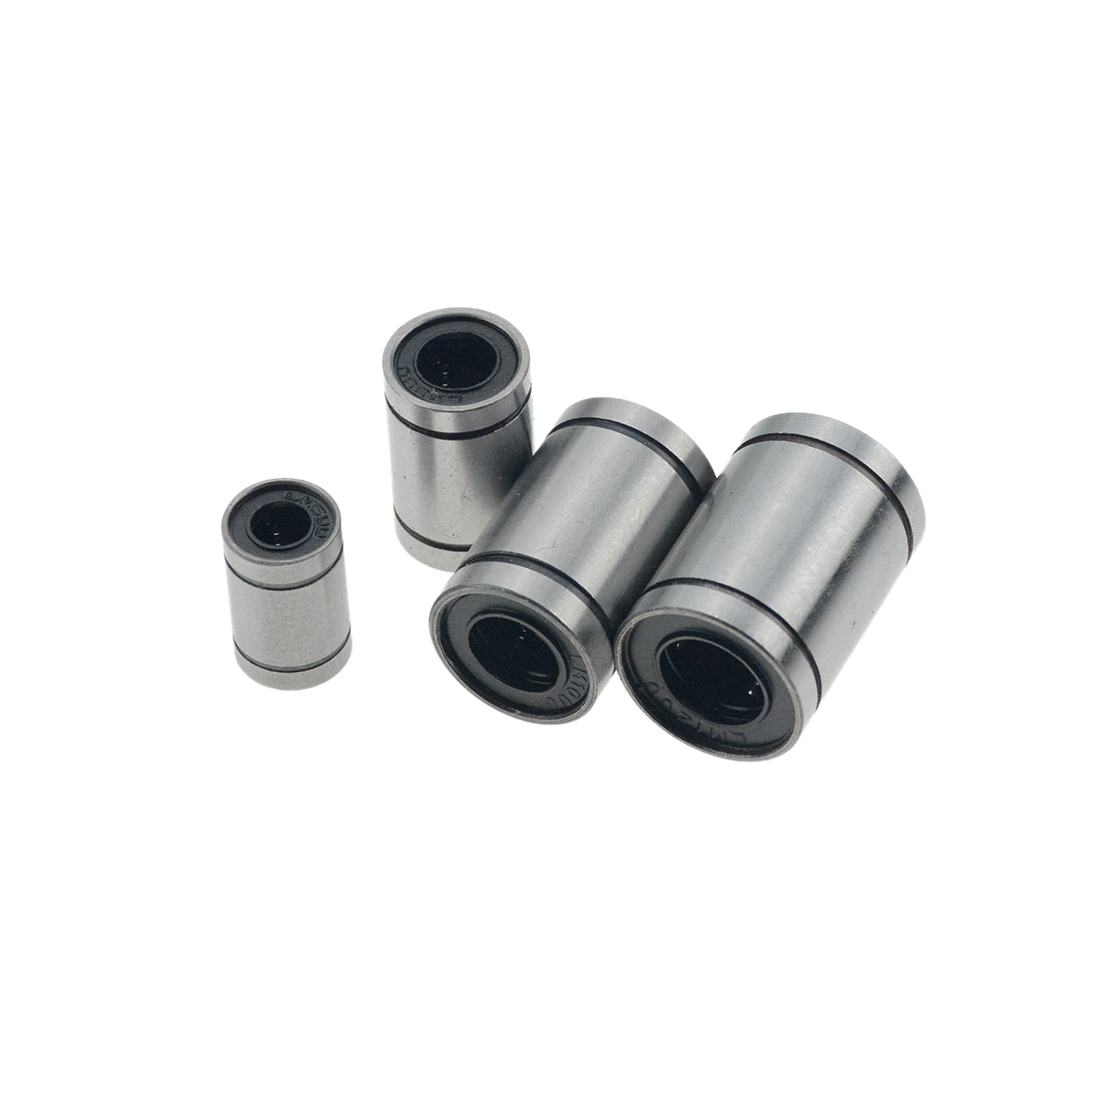 12pcs/lot LM12UU LM20UU LM6UU LM8UU LM10UULinear Bushing Bearing 12mm CNC 3d Printer Parts Linear Bearings For Linear Rods Shaft